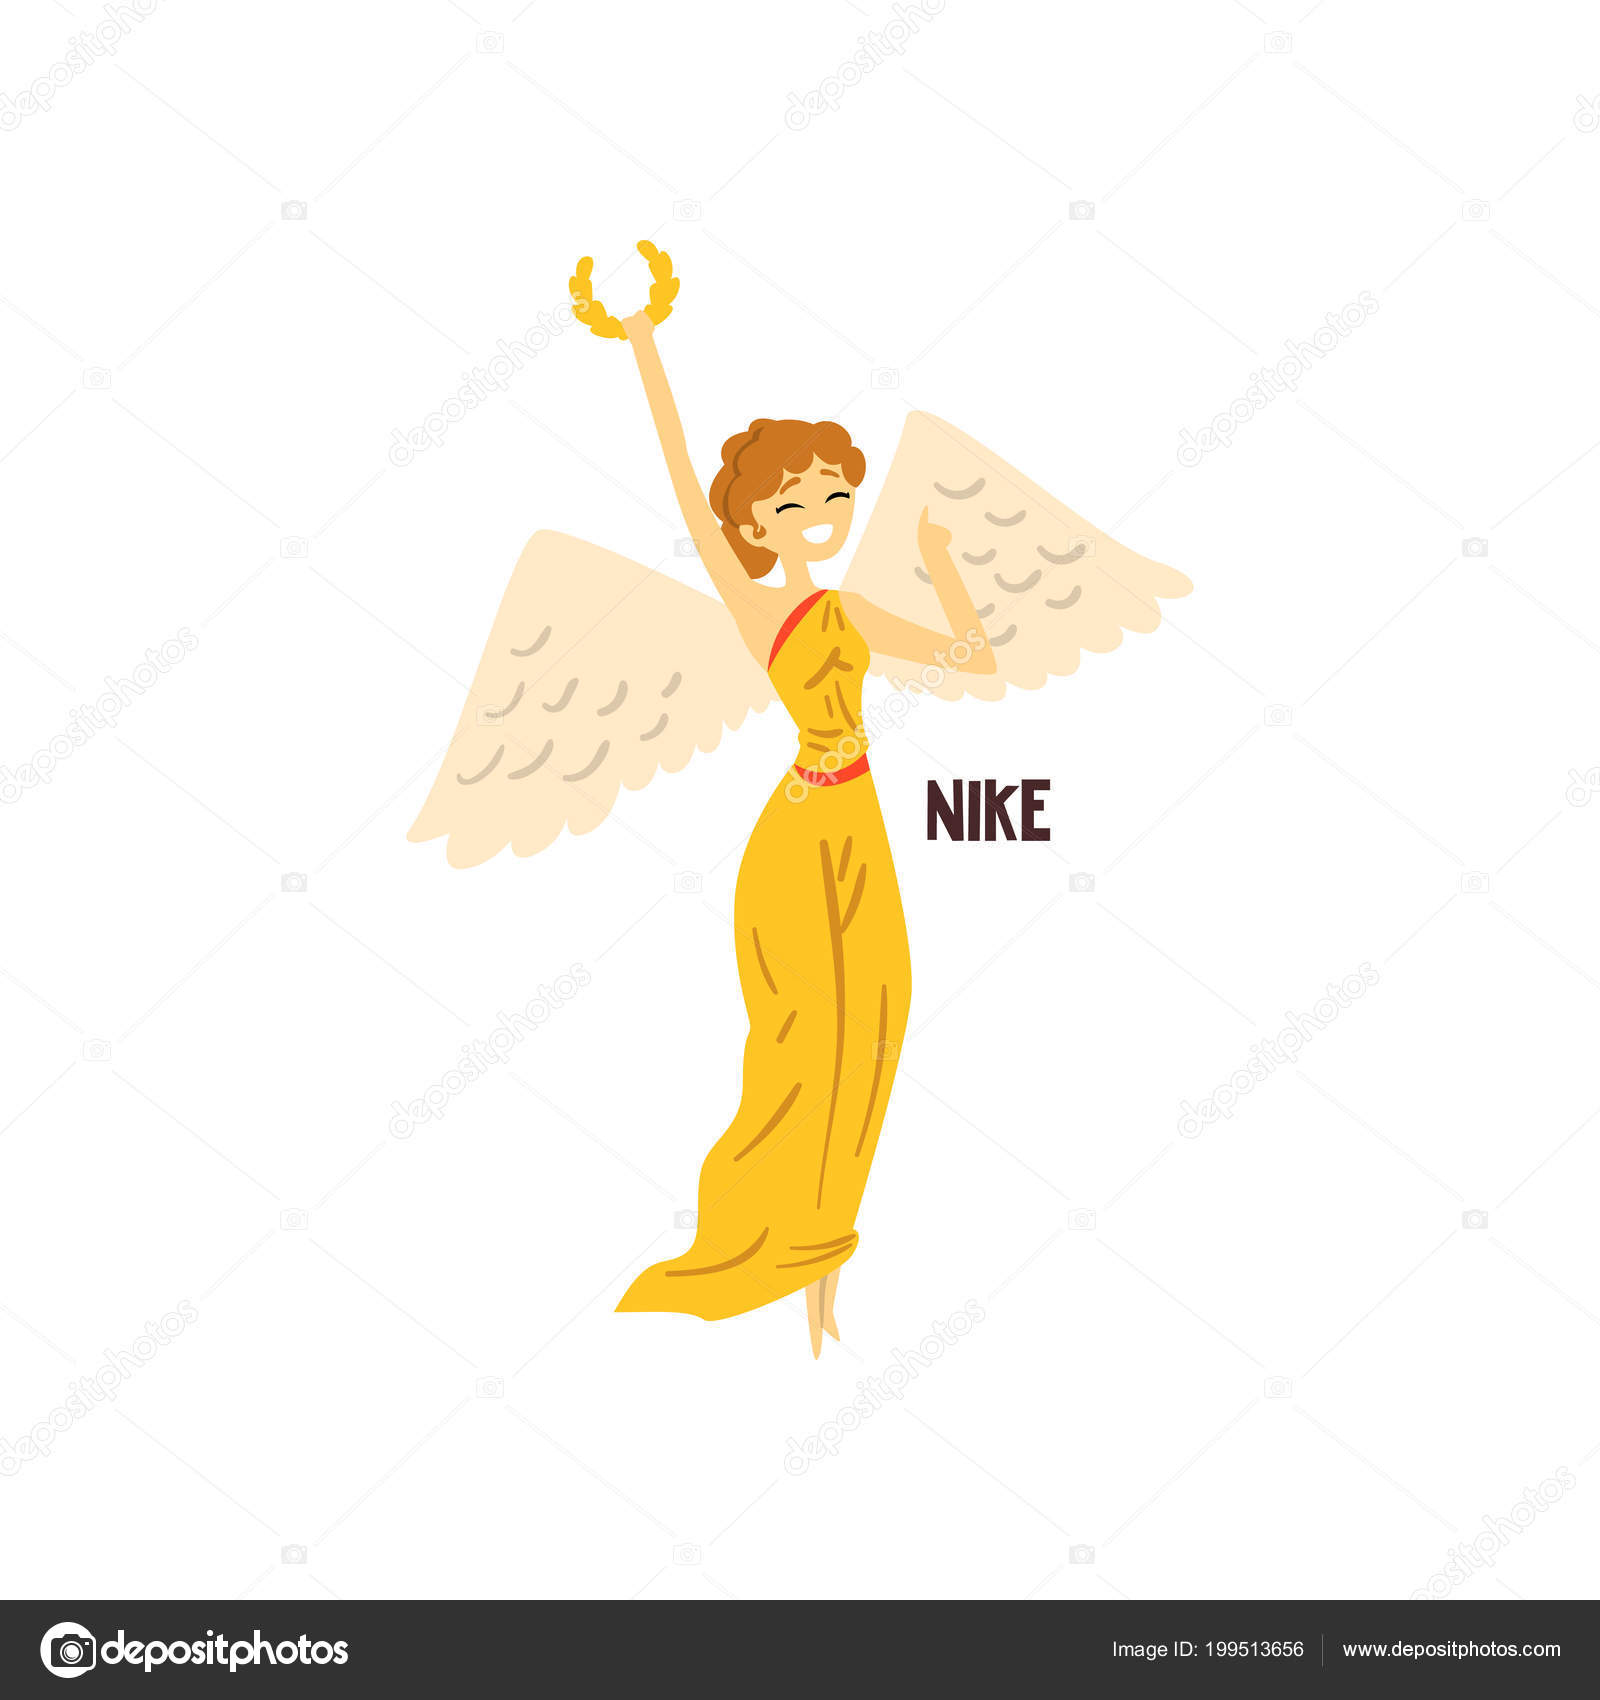 Nike Olympian Greek Goddess Ancient Greece Mythology Character